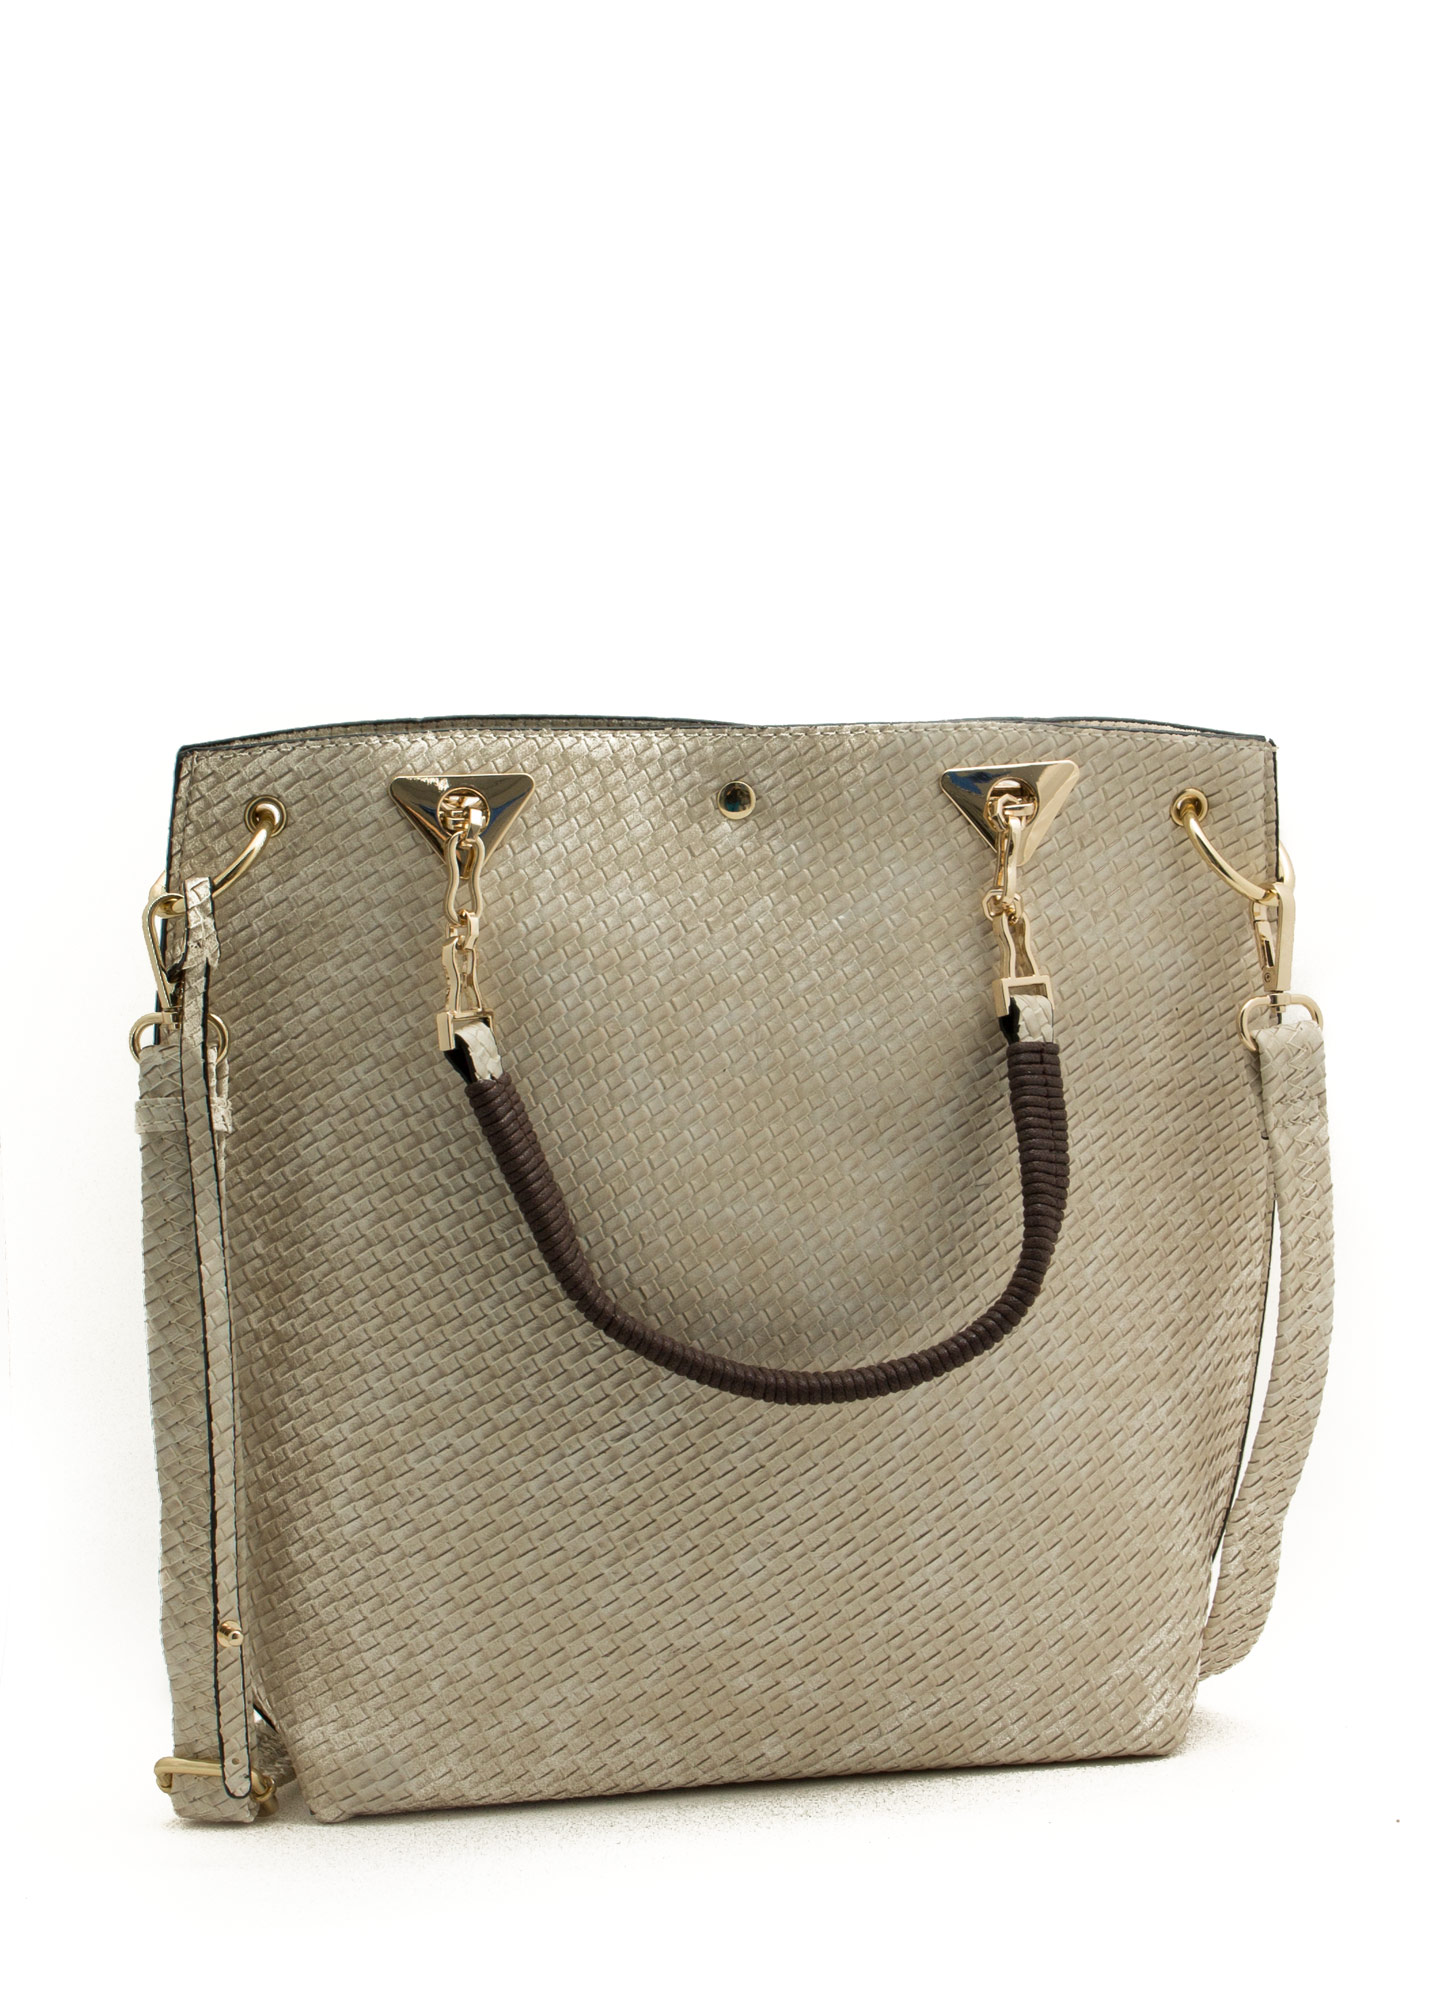 Woven Textured Tote Bag BEIGE